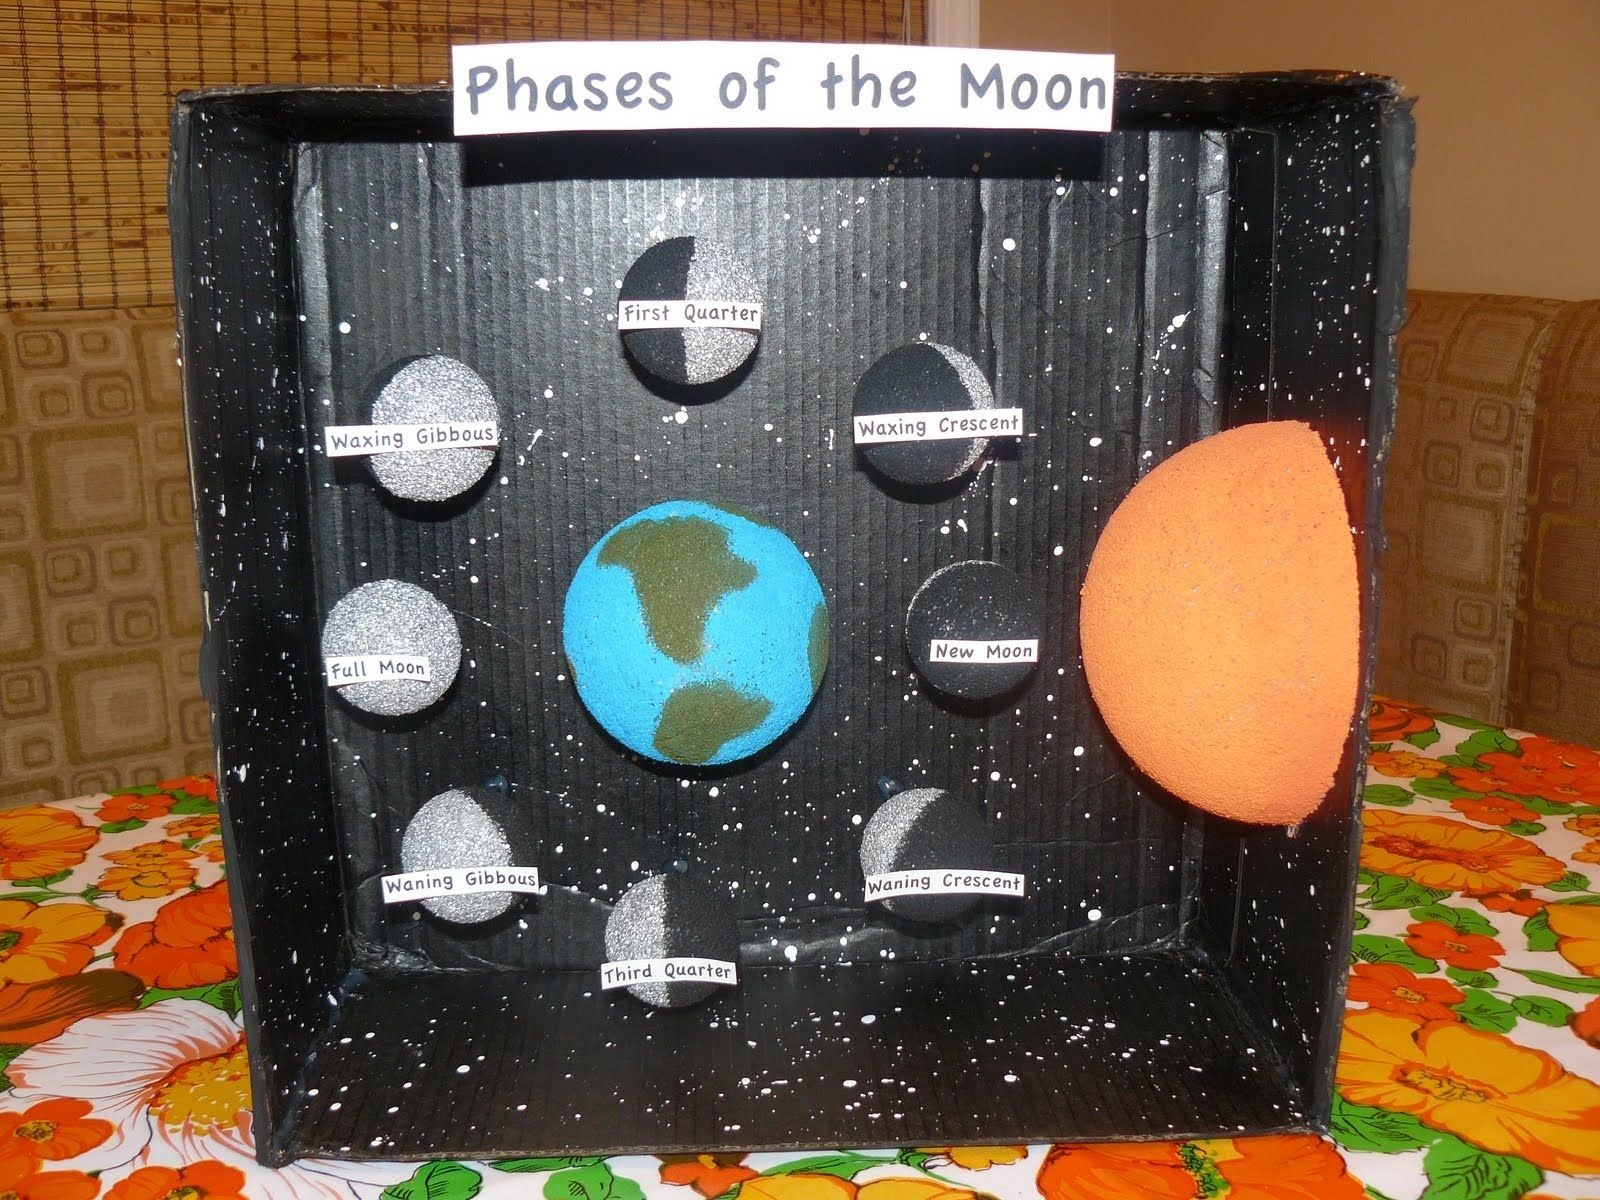 10 Attractive Phases Of The Moon Project Ideas phases of the moon projects miss ms science project phases of 2020